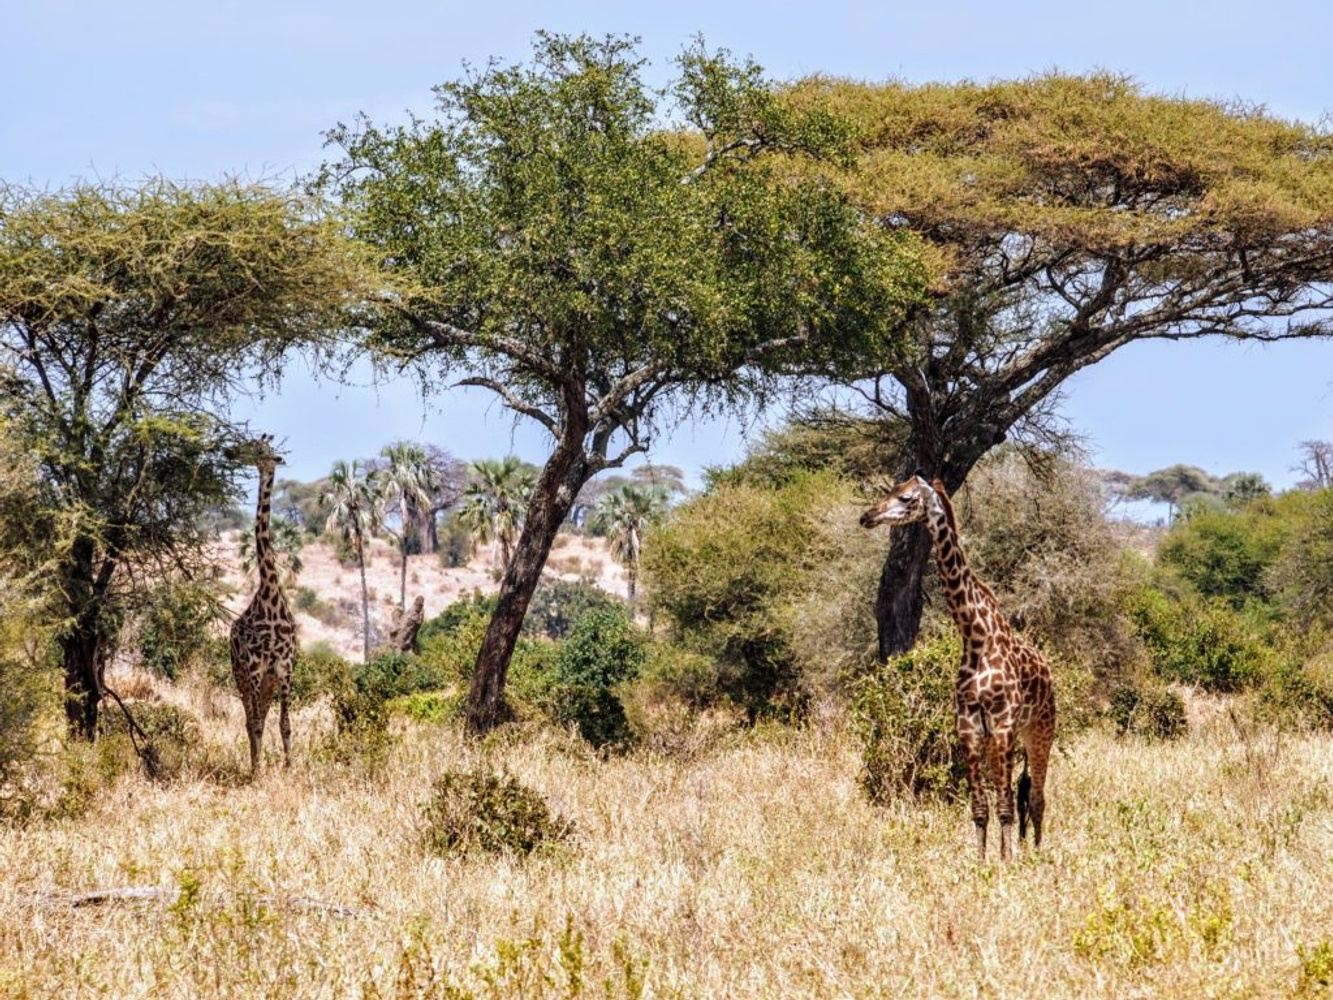 4 Days Tarangire, Serengeti & Ngorongoro Crater